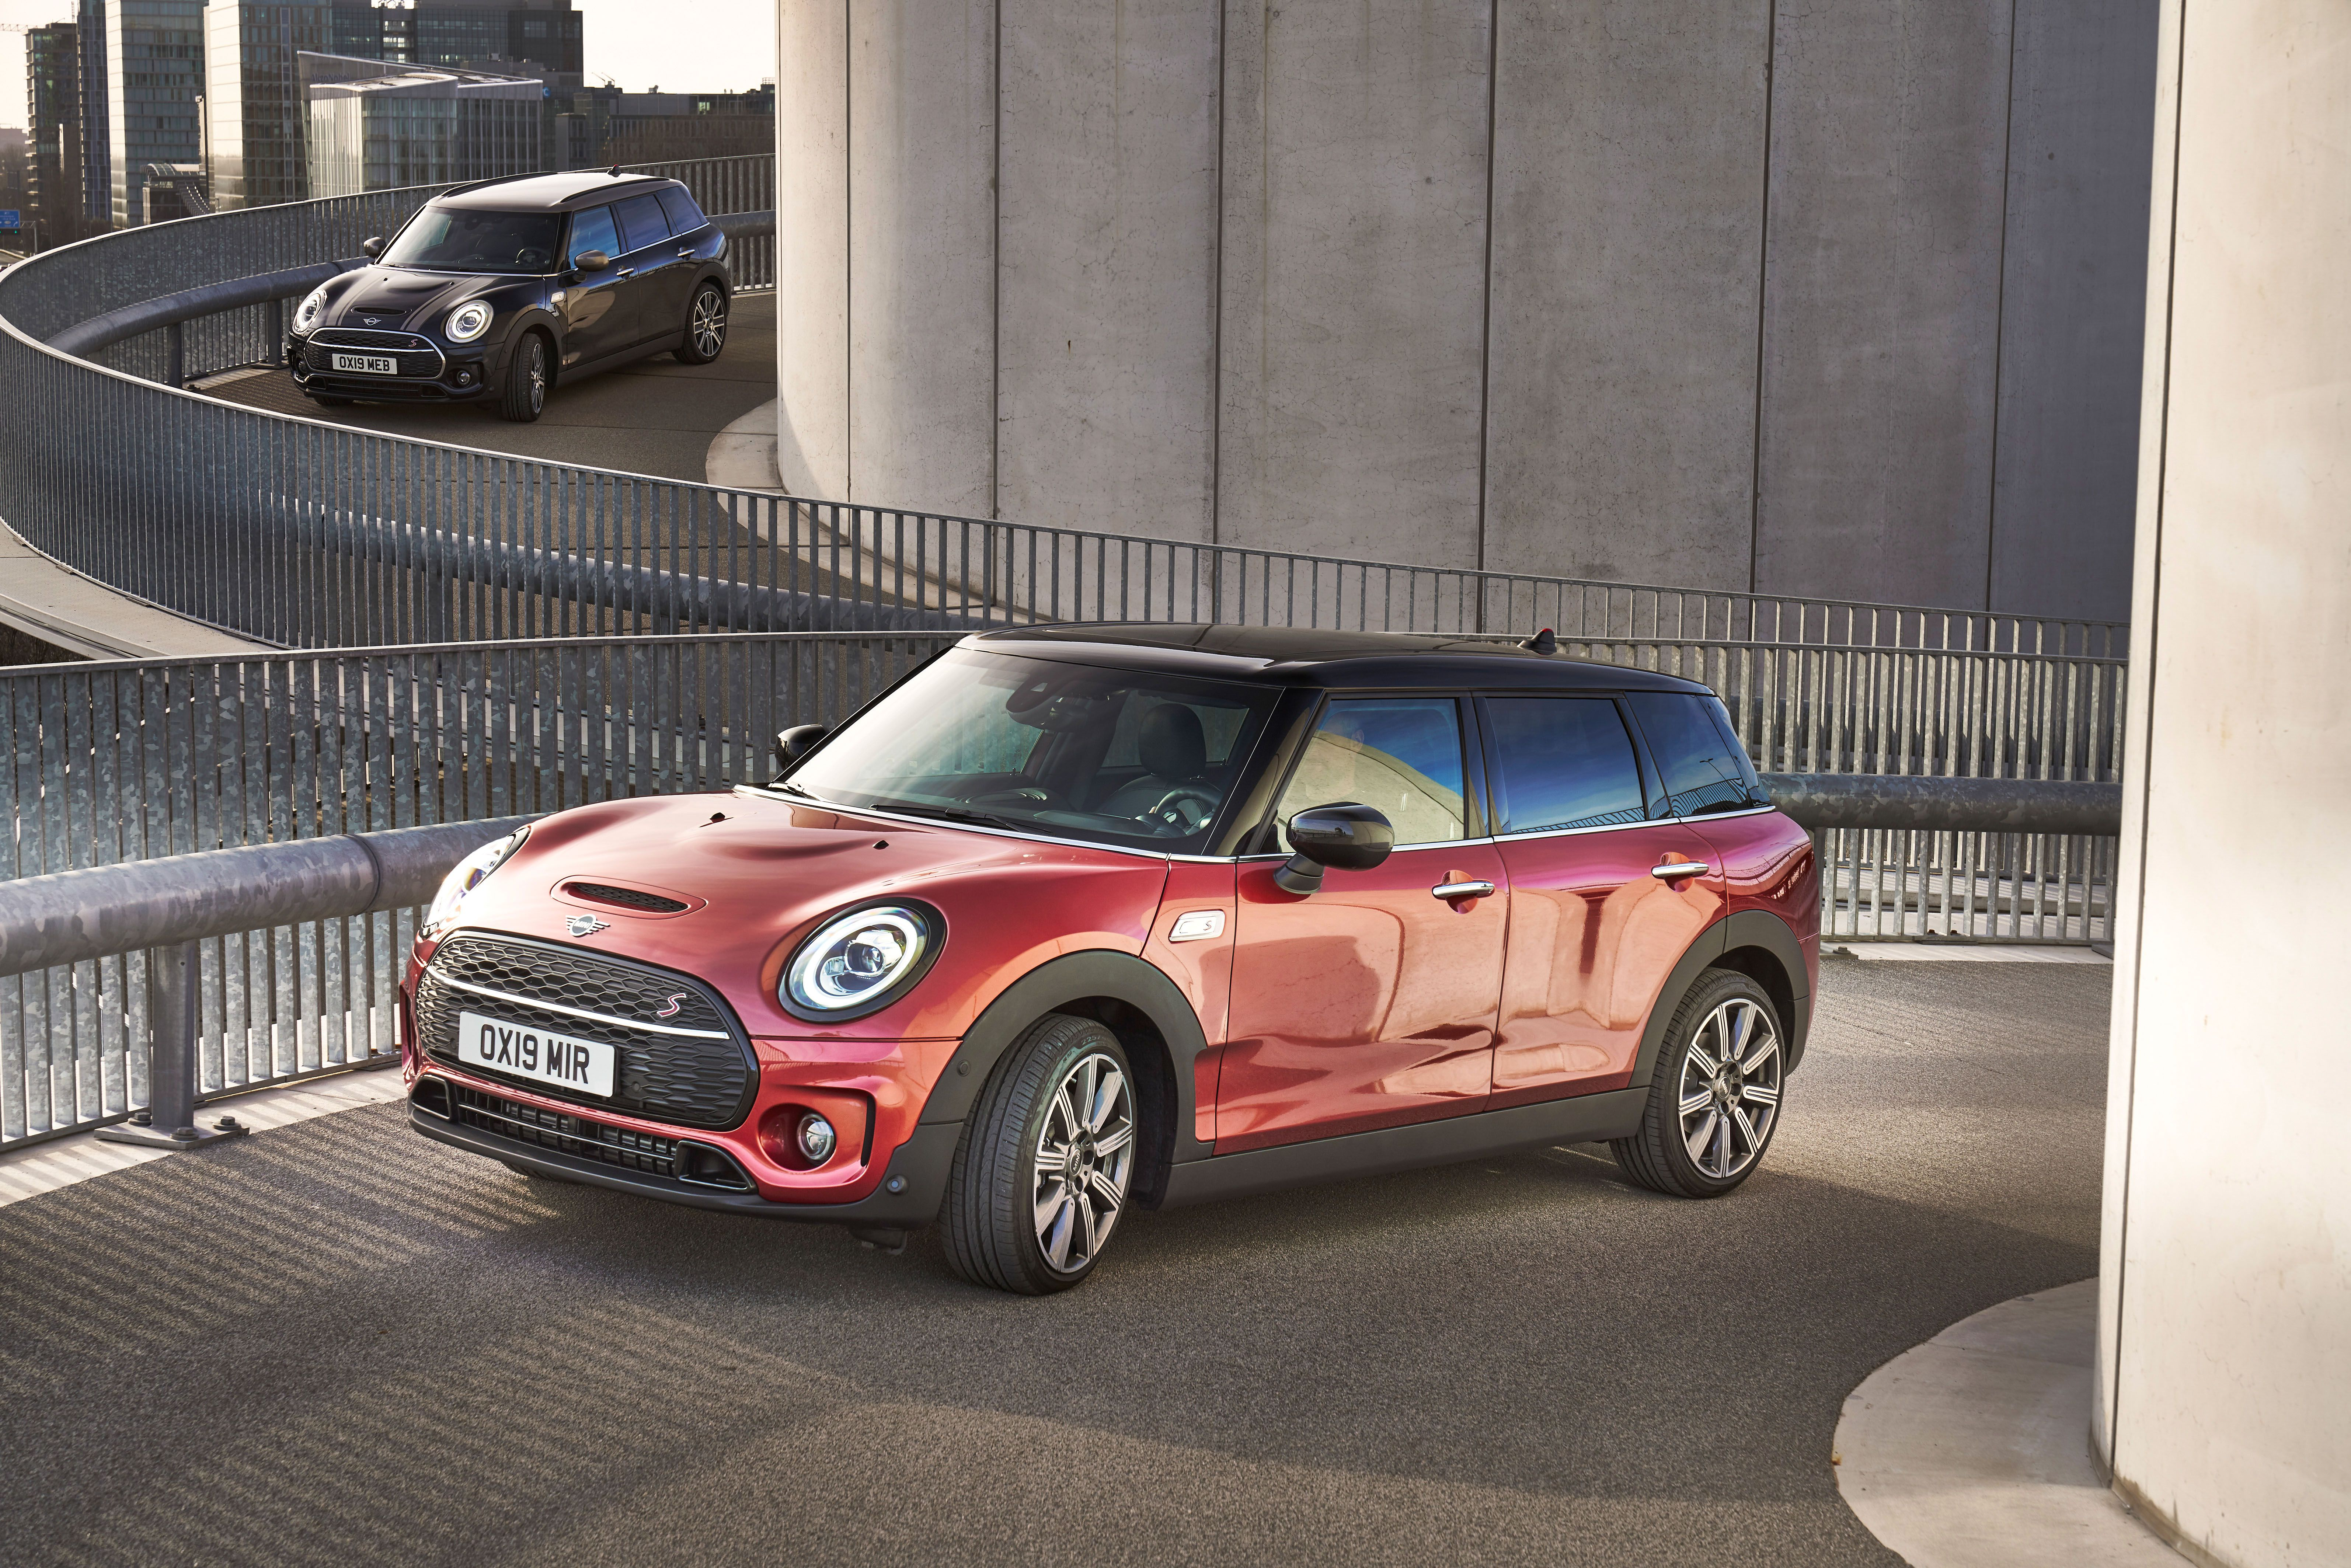 35 New 2020 Mini Clubman Engine